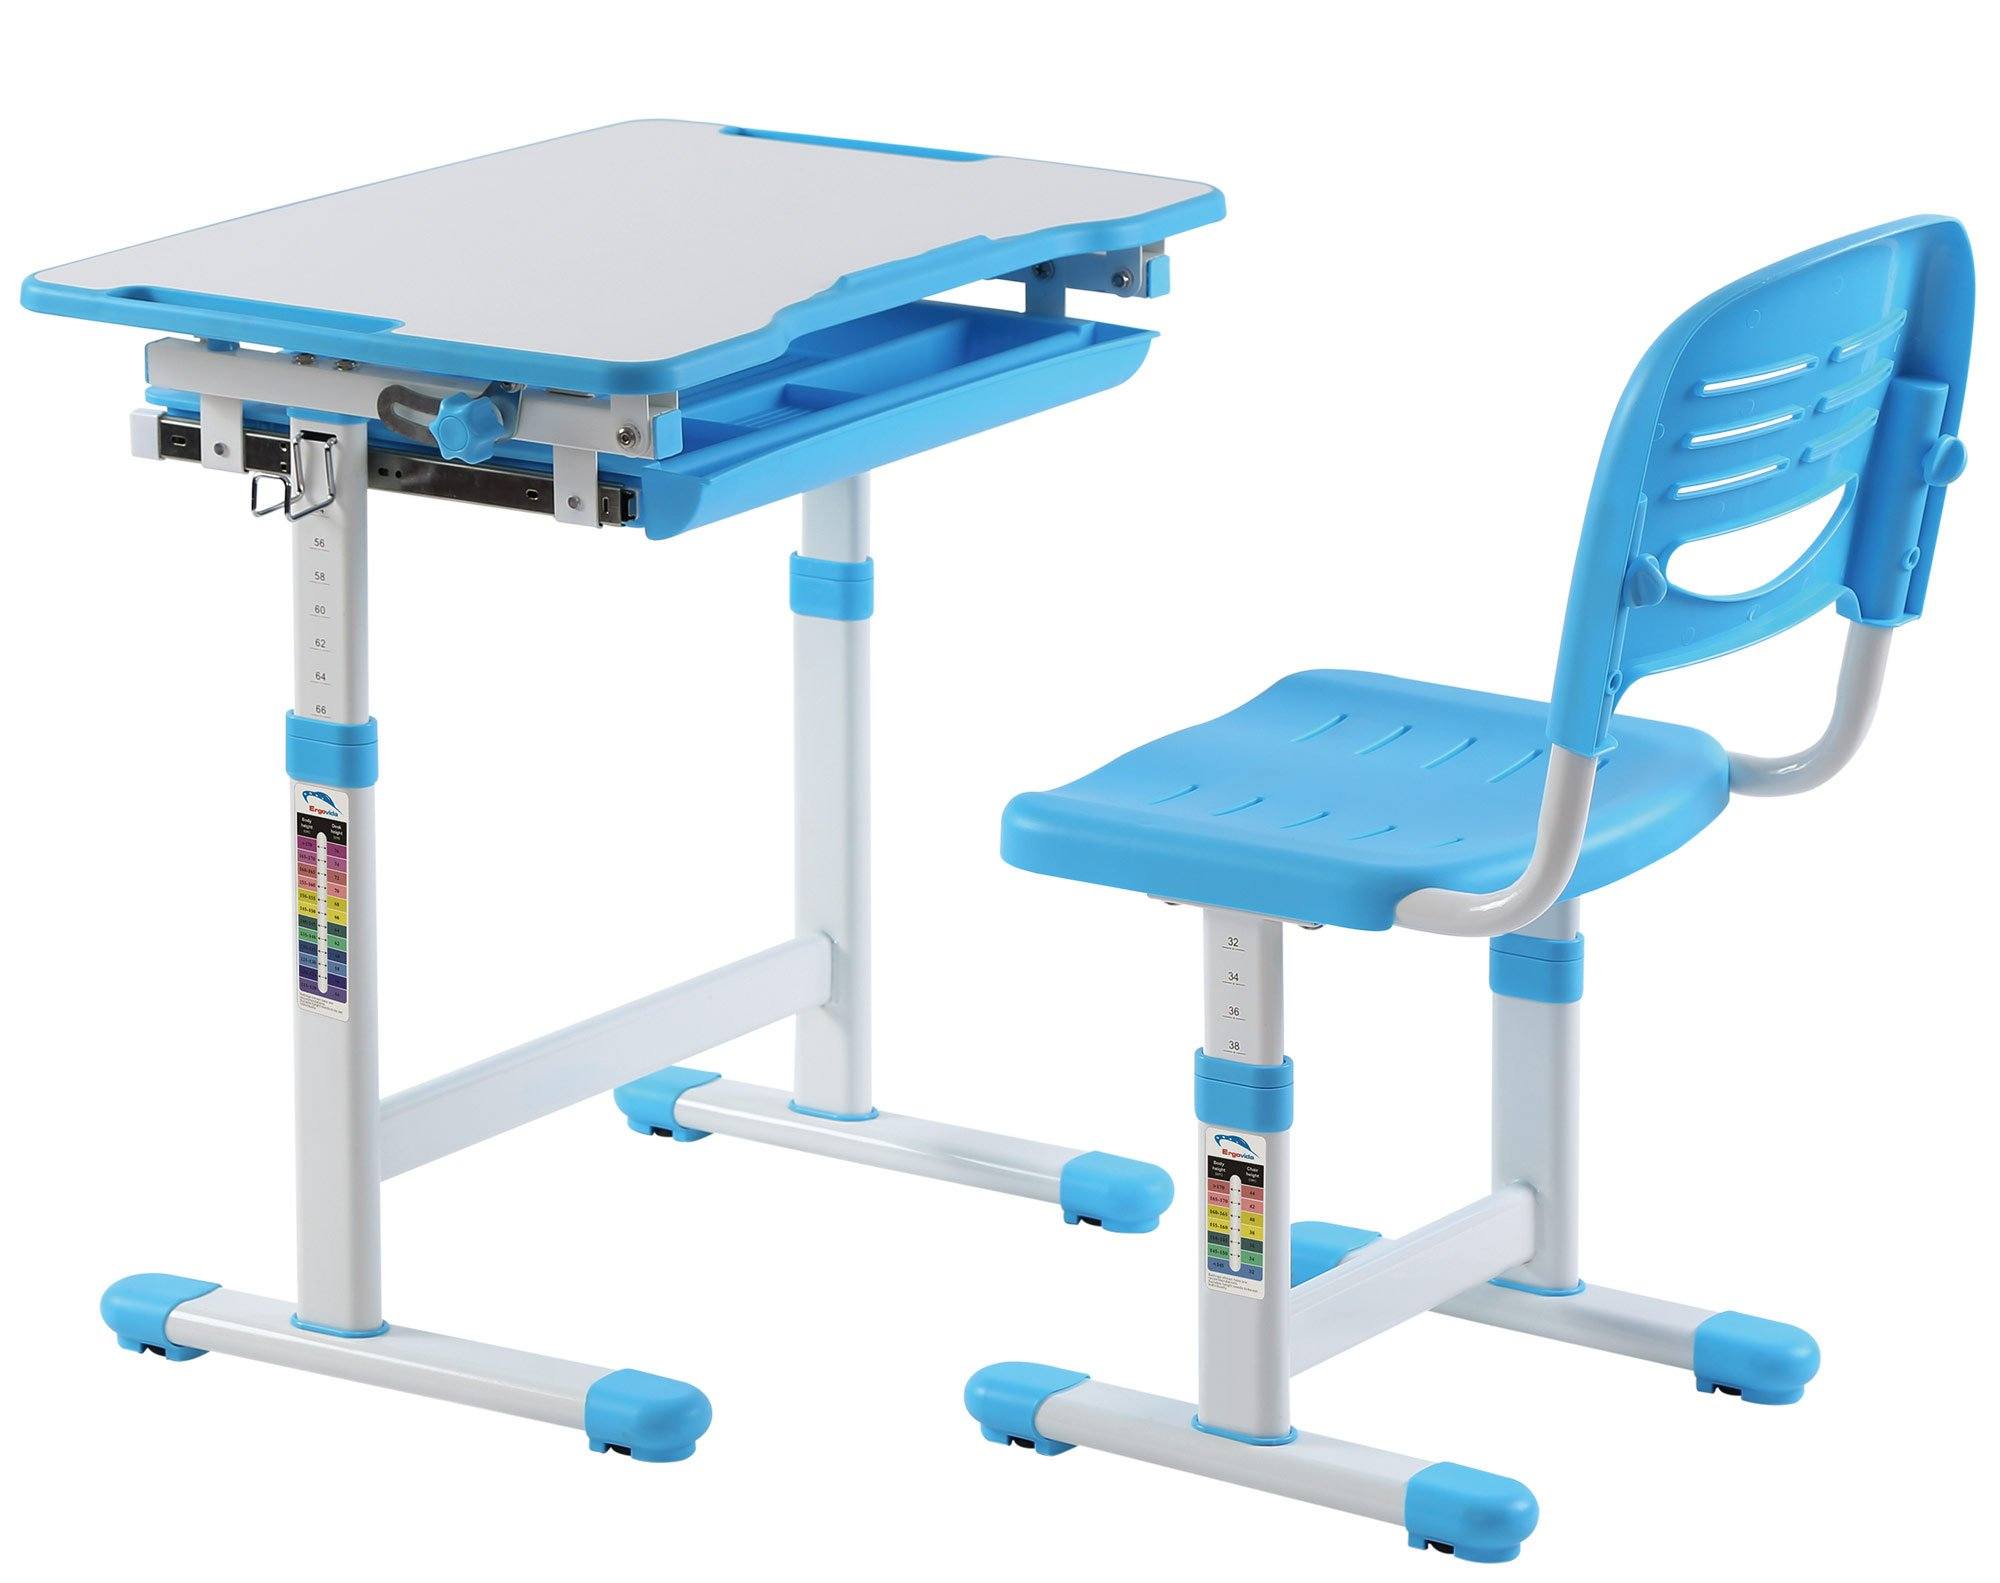 Ergonomic-Kids-Desk-Chair-Height-Adjustable-Kids-Table-Study-Desk-Blue-Desk-02